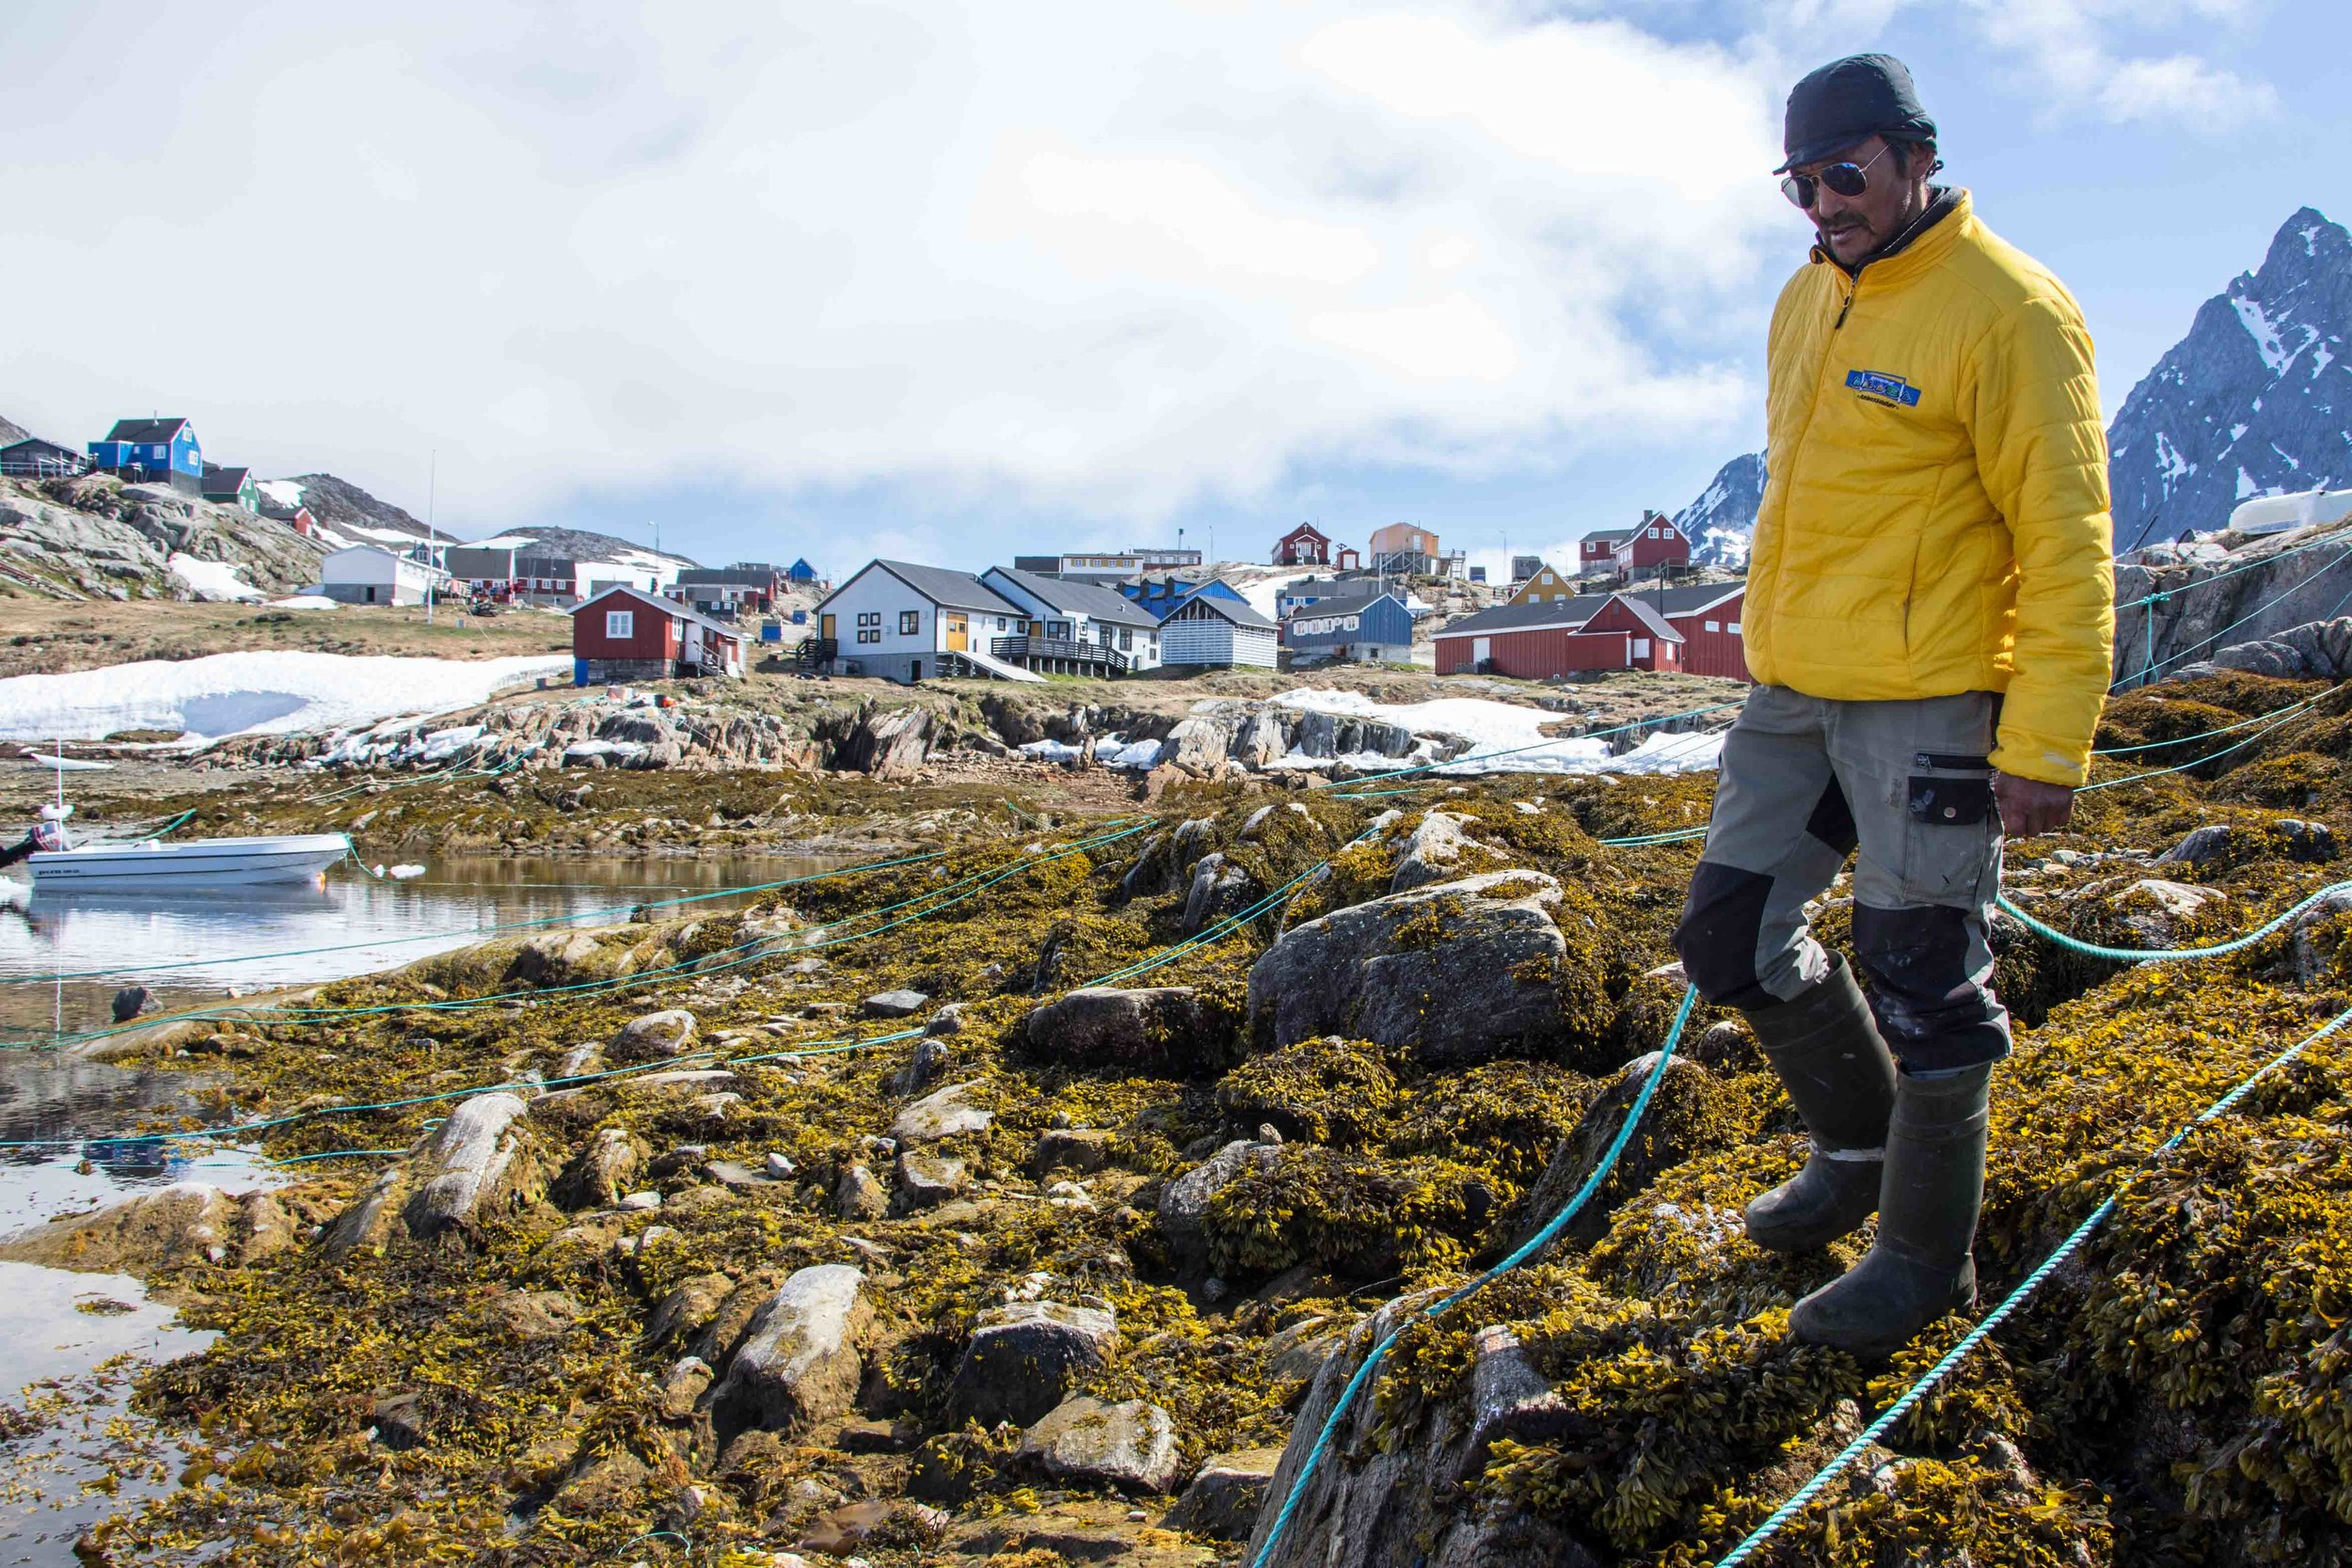 A Greenlandic fishermen just finished tying his boat line to the shore in the settlement of Kuummiit, East Greenland.